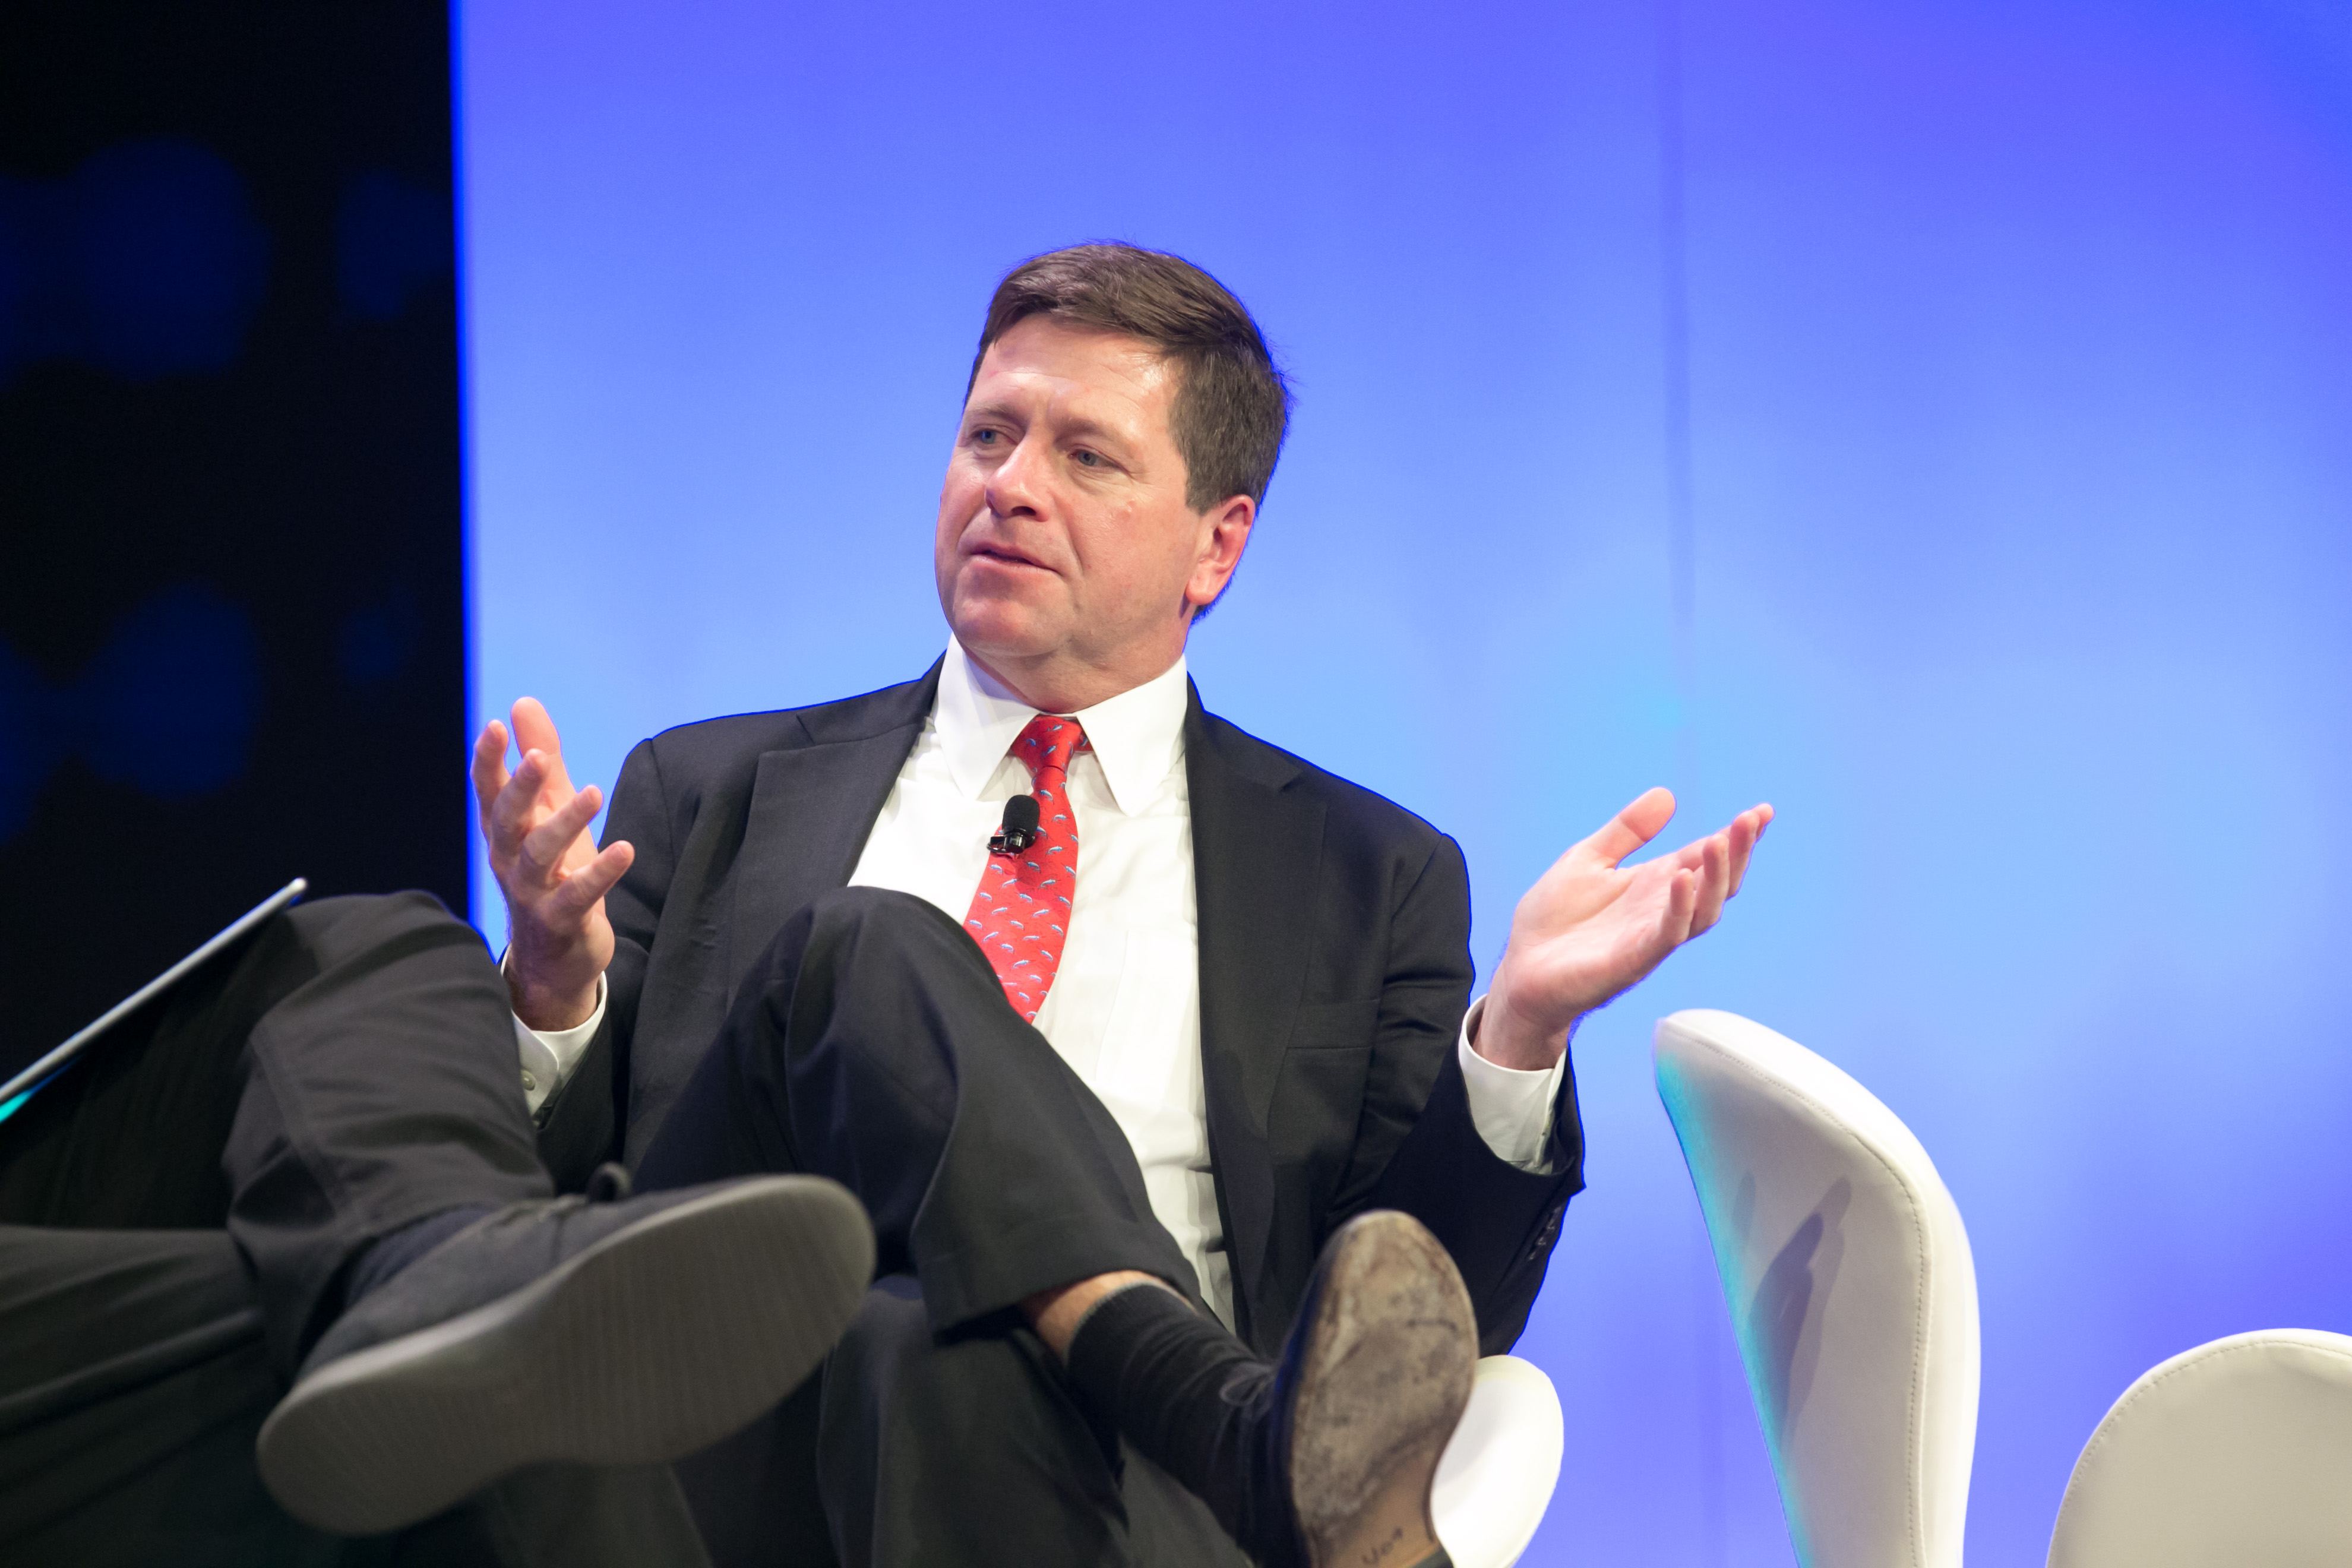 SEC Chair Clayton Affirms Agency's Stance Ether Is No Longer a Security